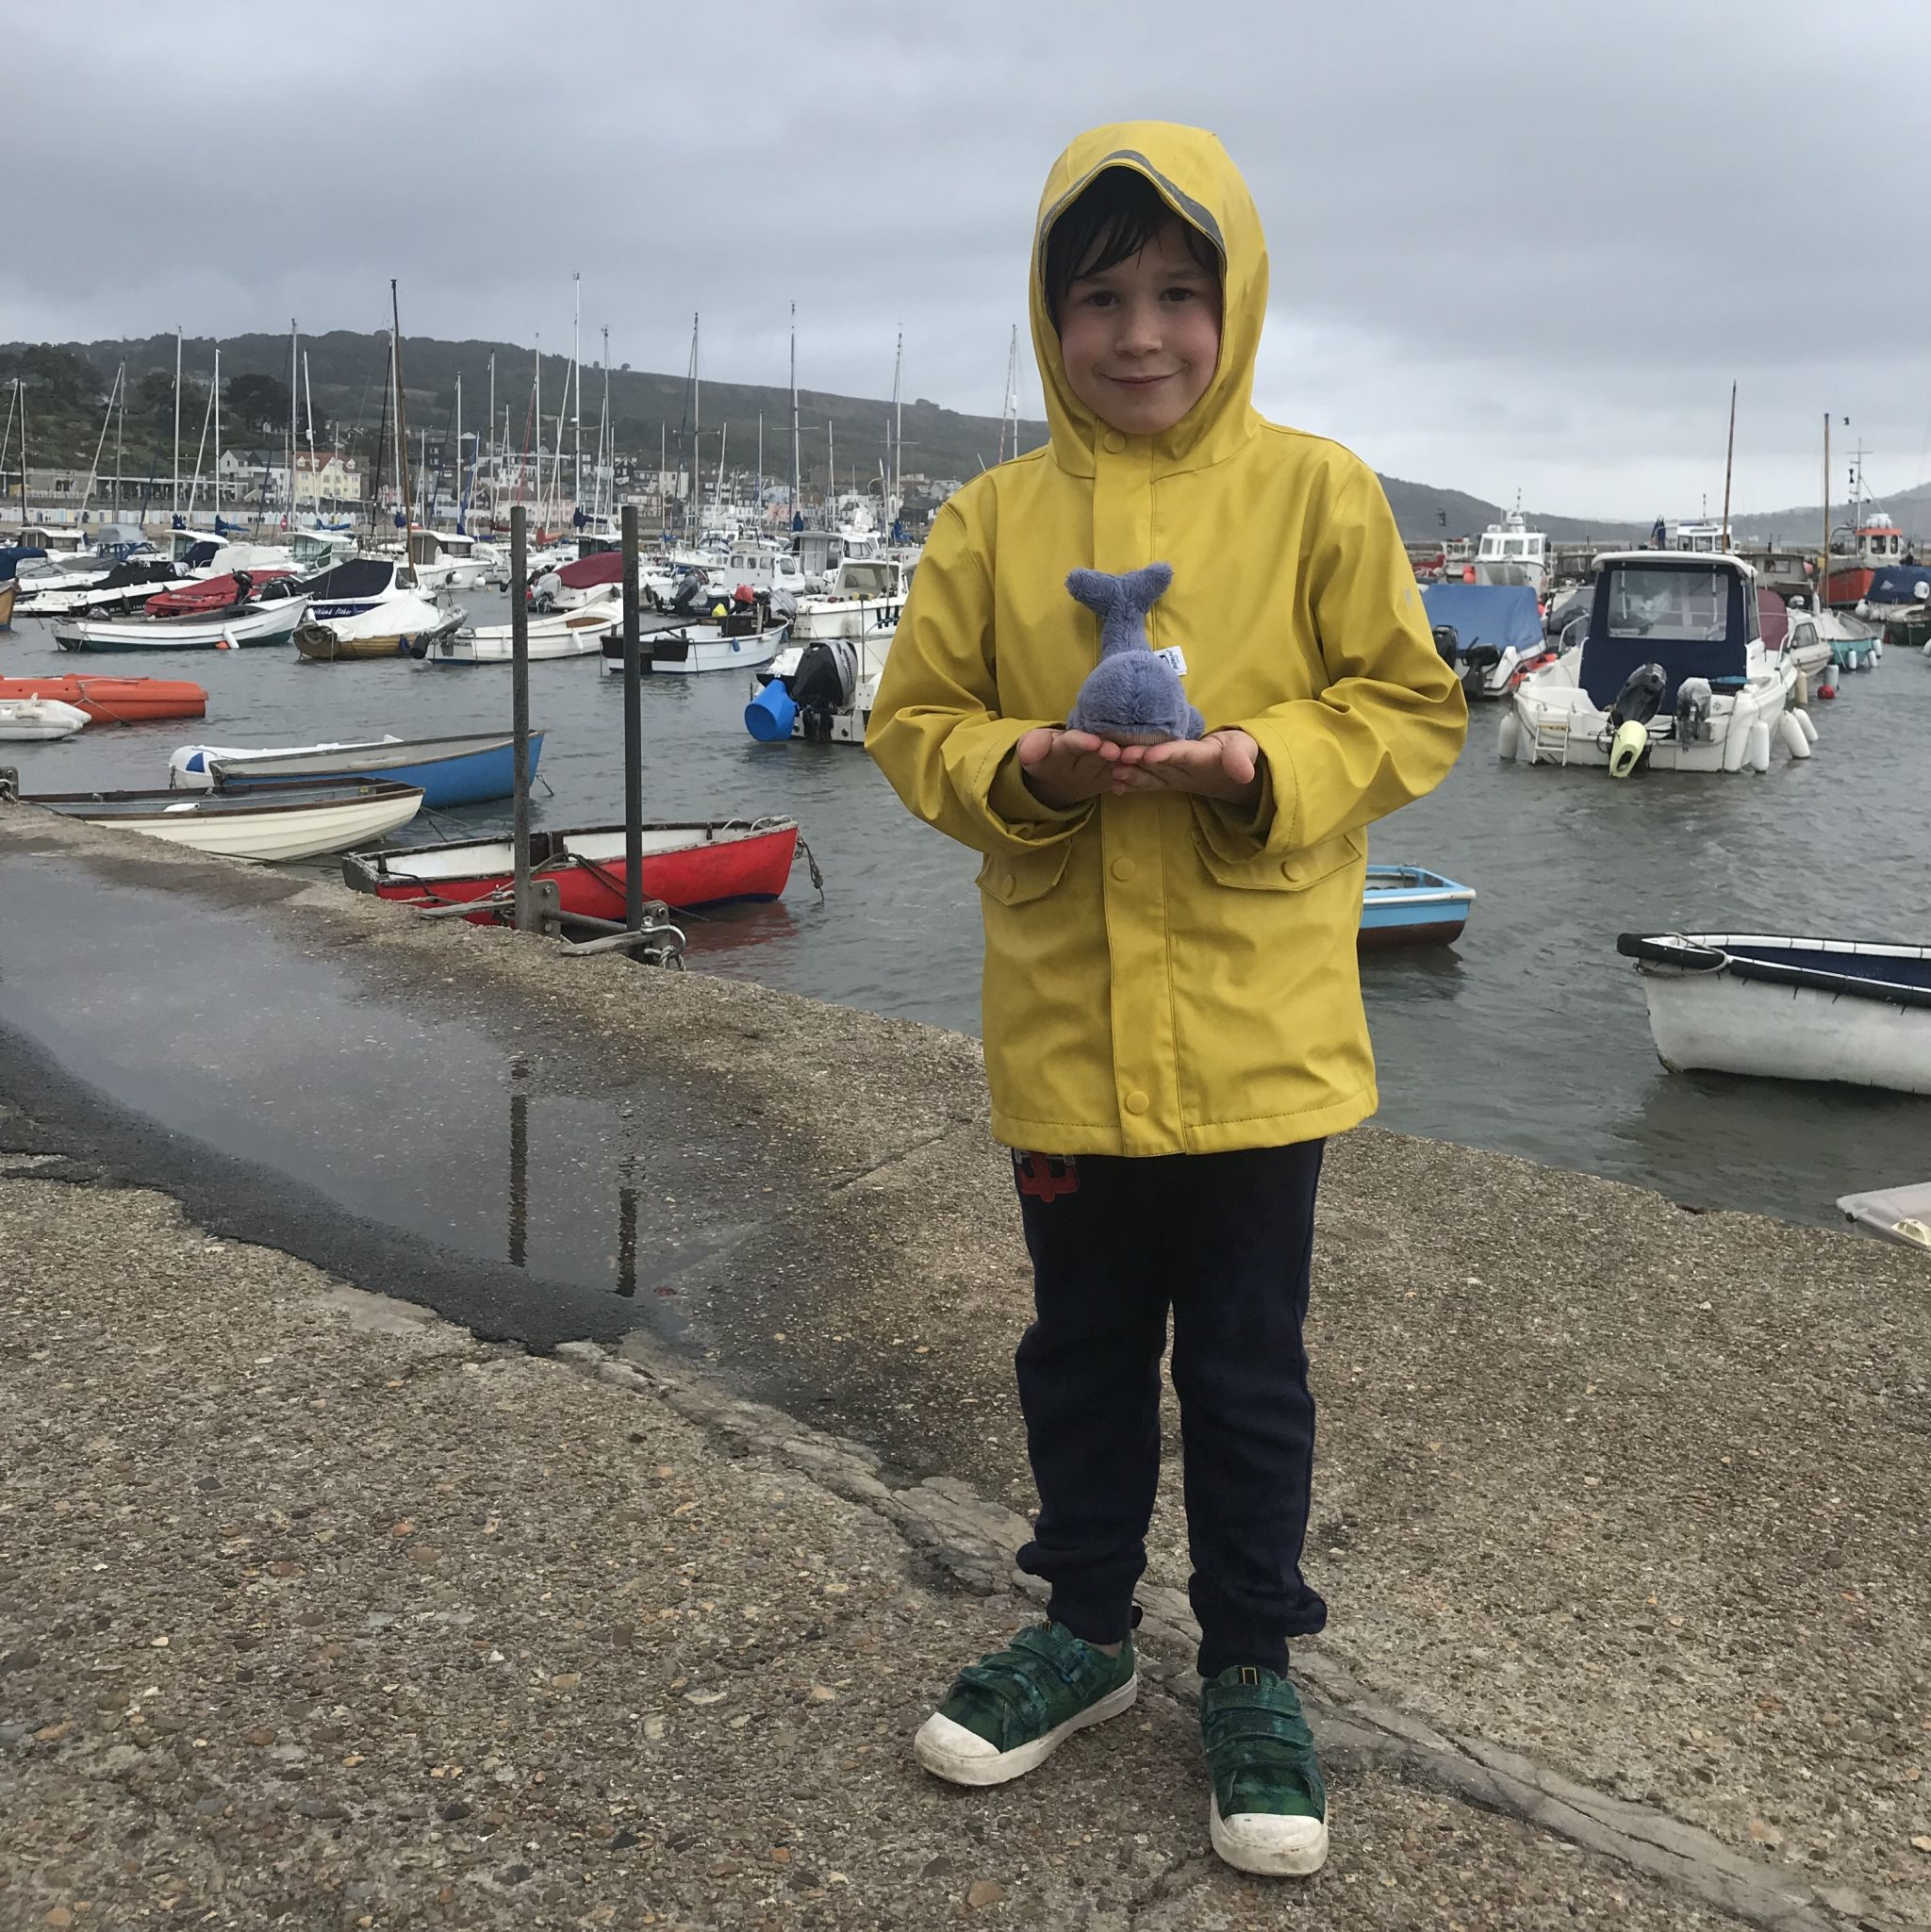 A boy in a yellow fishermans coat holding a toy whale by the harbour